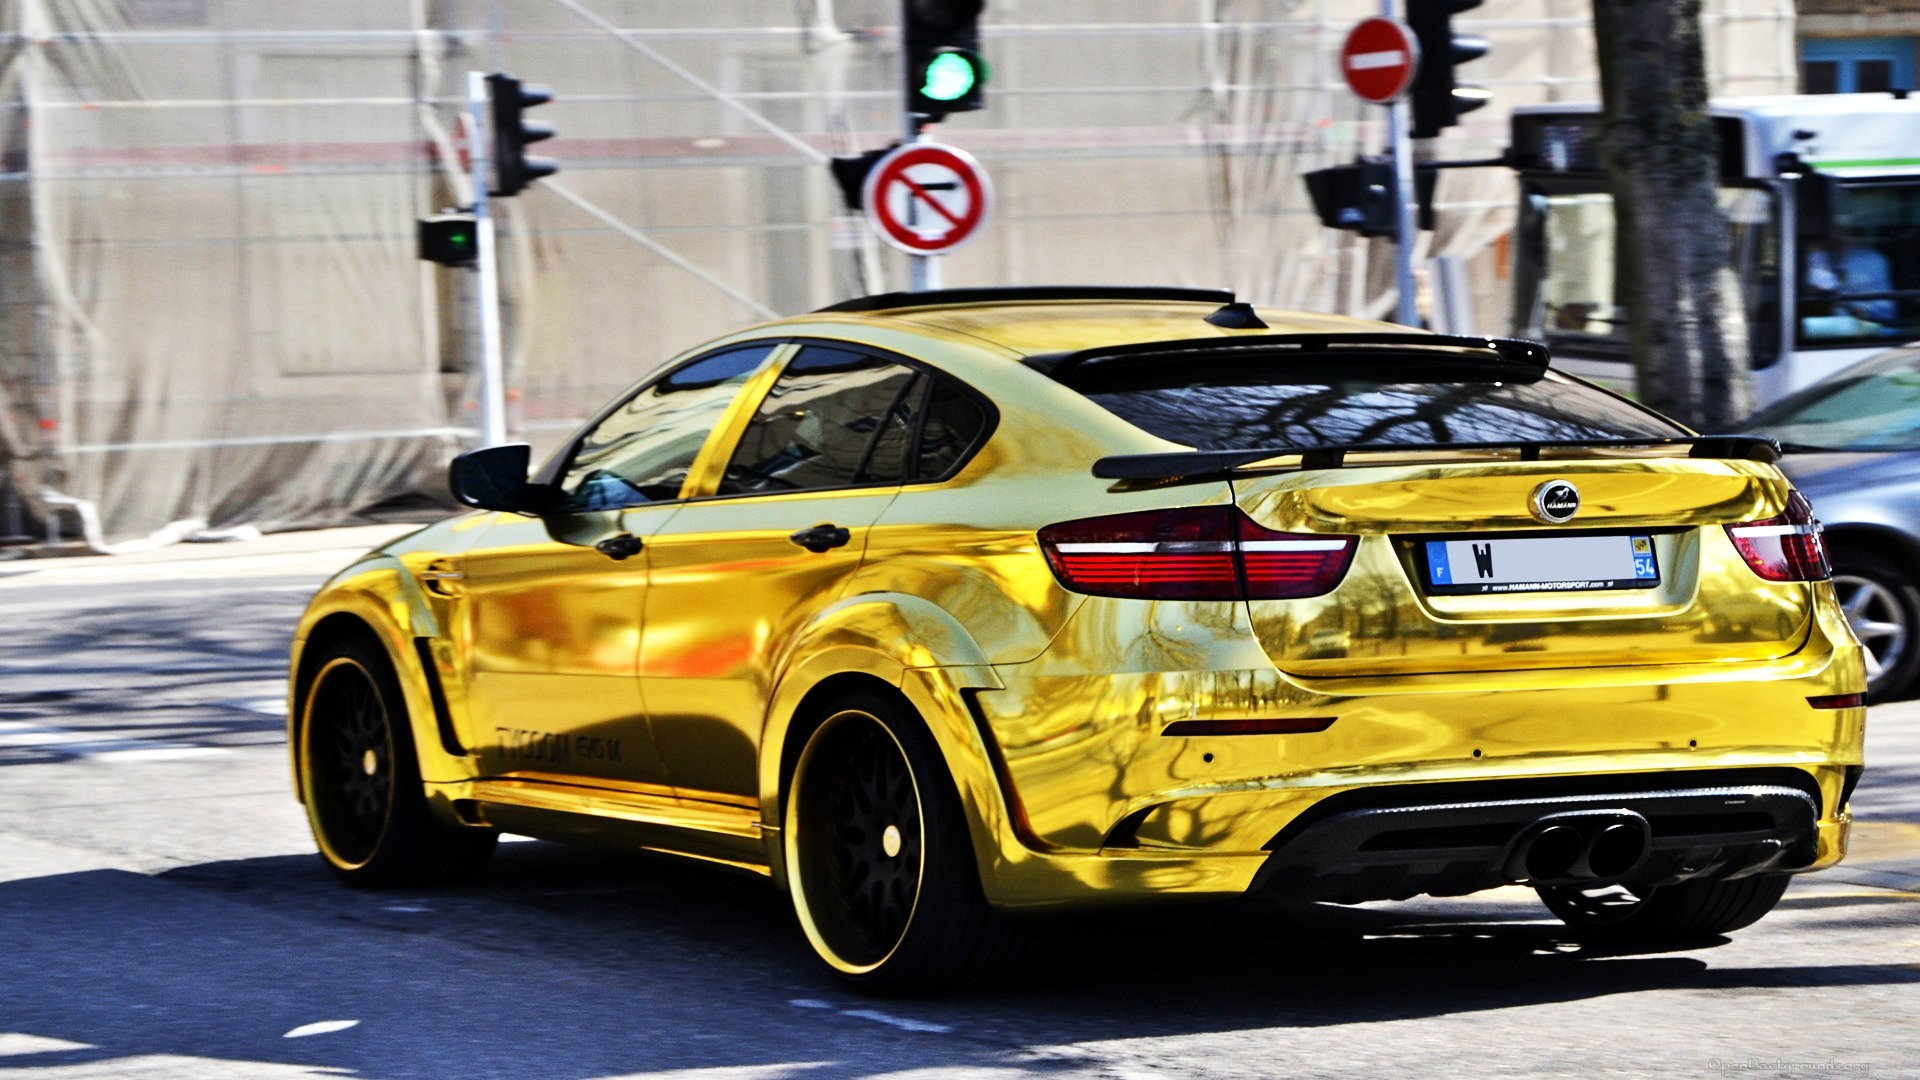 Bmw X6 M Hamann In Gold Wallpaper Allwallpaper In 11507 Pc En